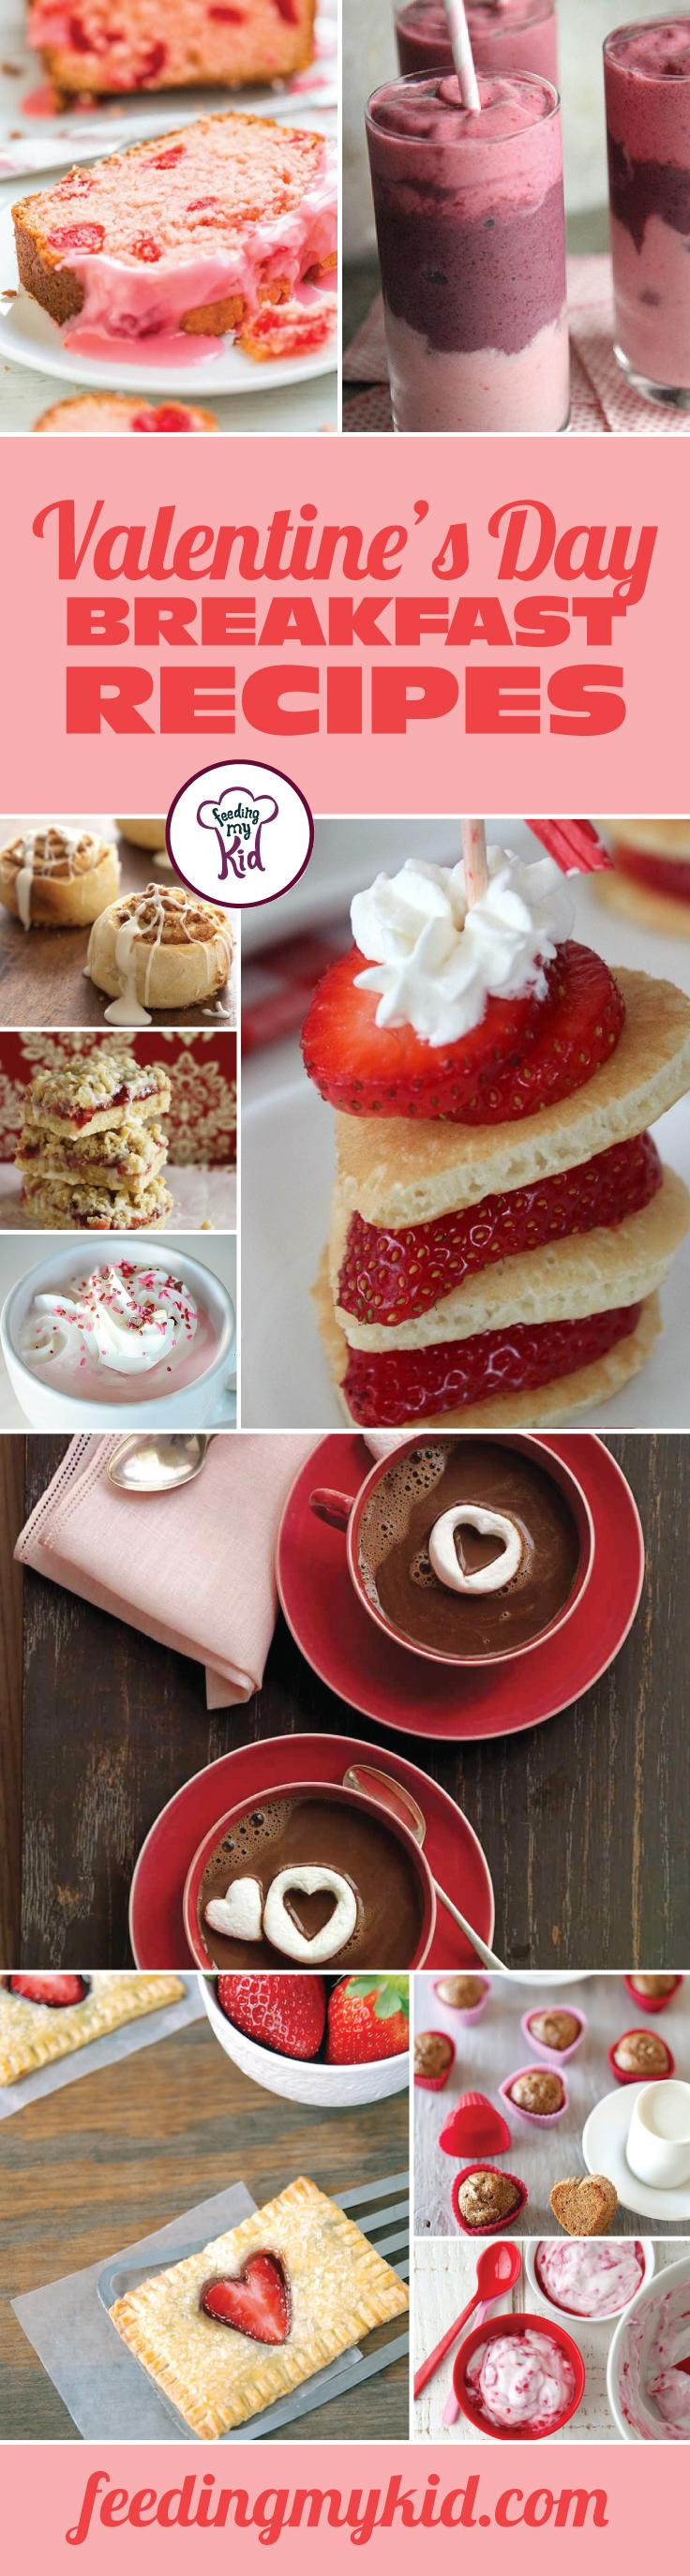 Valentine's Day Breakfast Recipes - Why not start your Valentine's Day off right with these amazing breakfast recipes. From heart pancake skewers to a strawberry coconut breakfast pie; these early morning treats are perfect for your Valentine's Day breakfast.